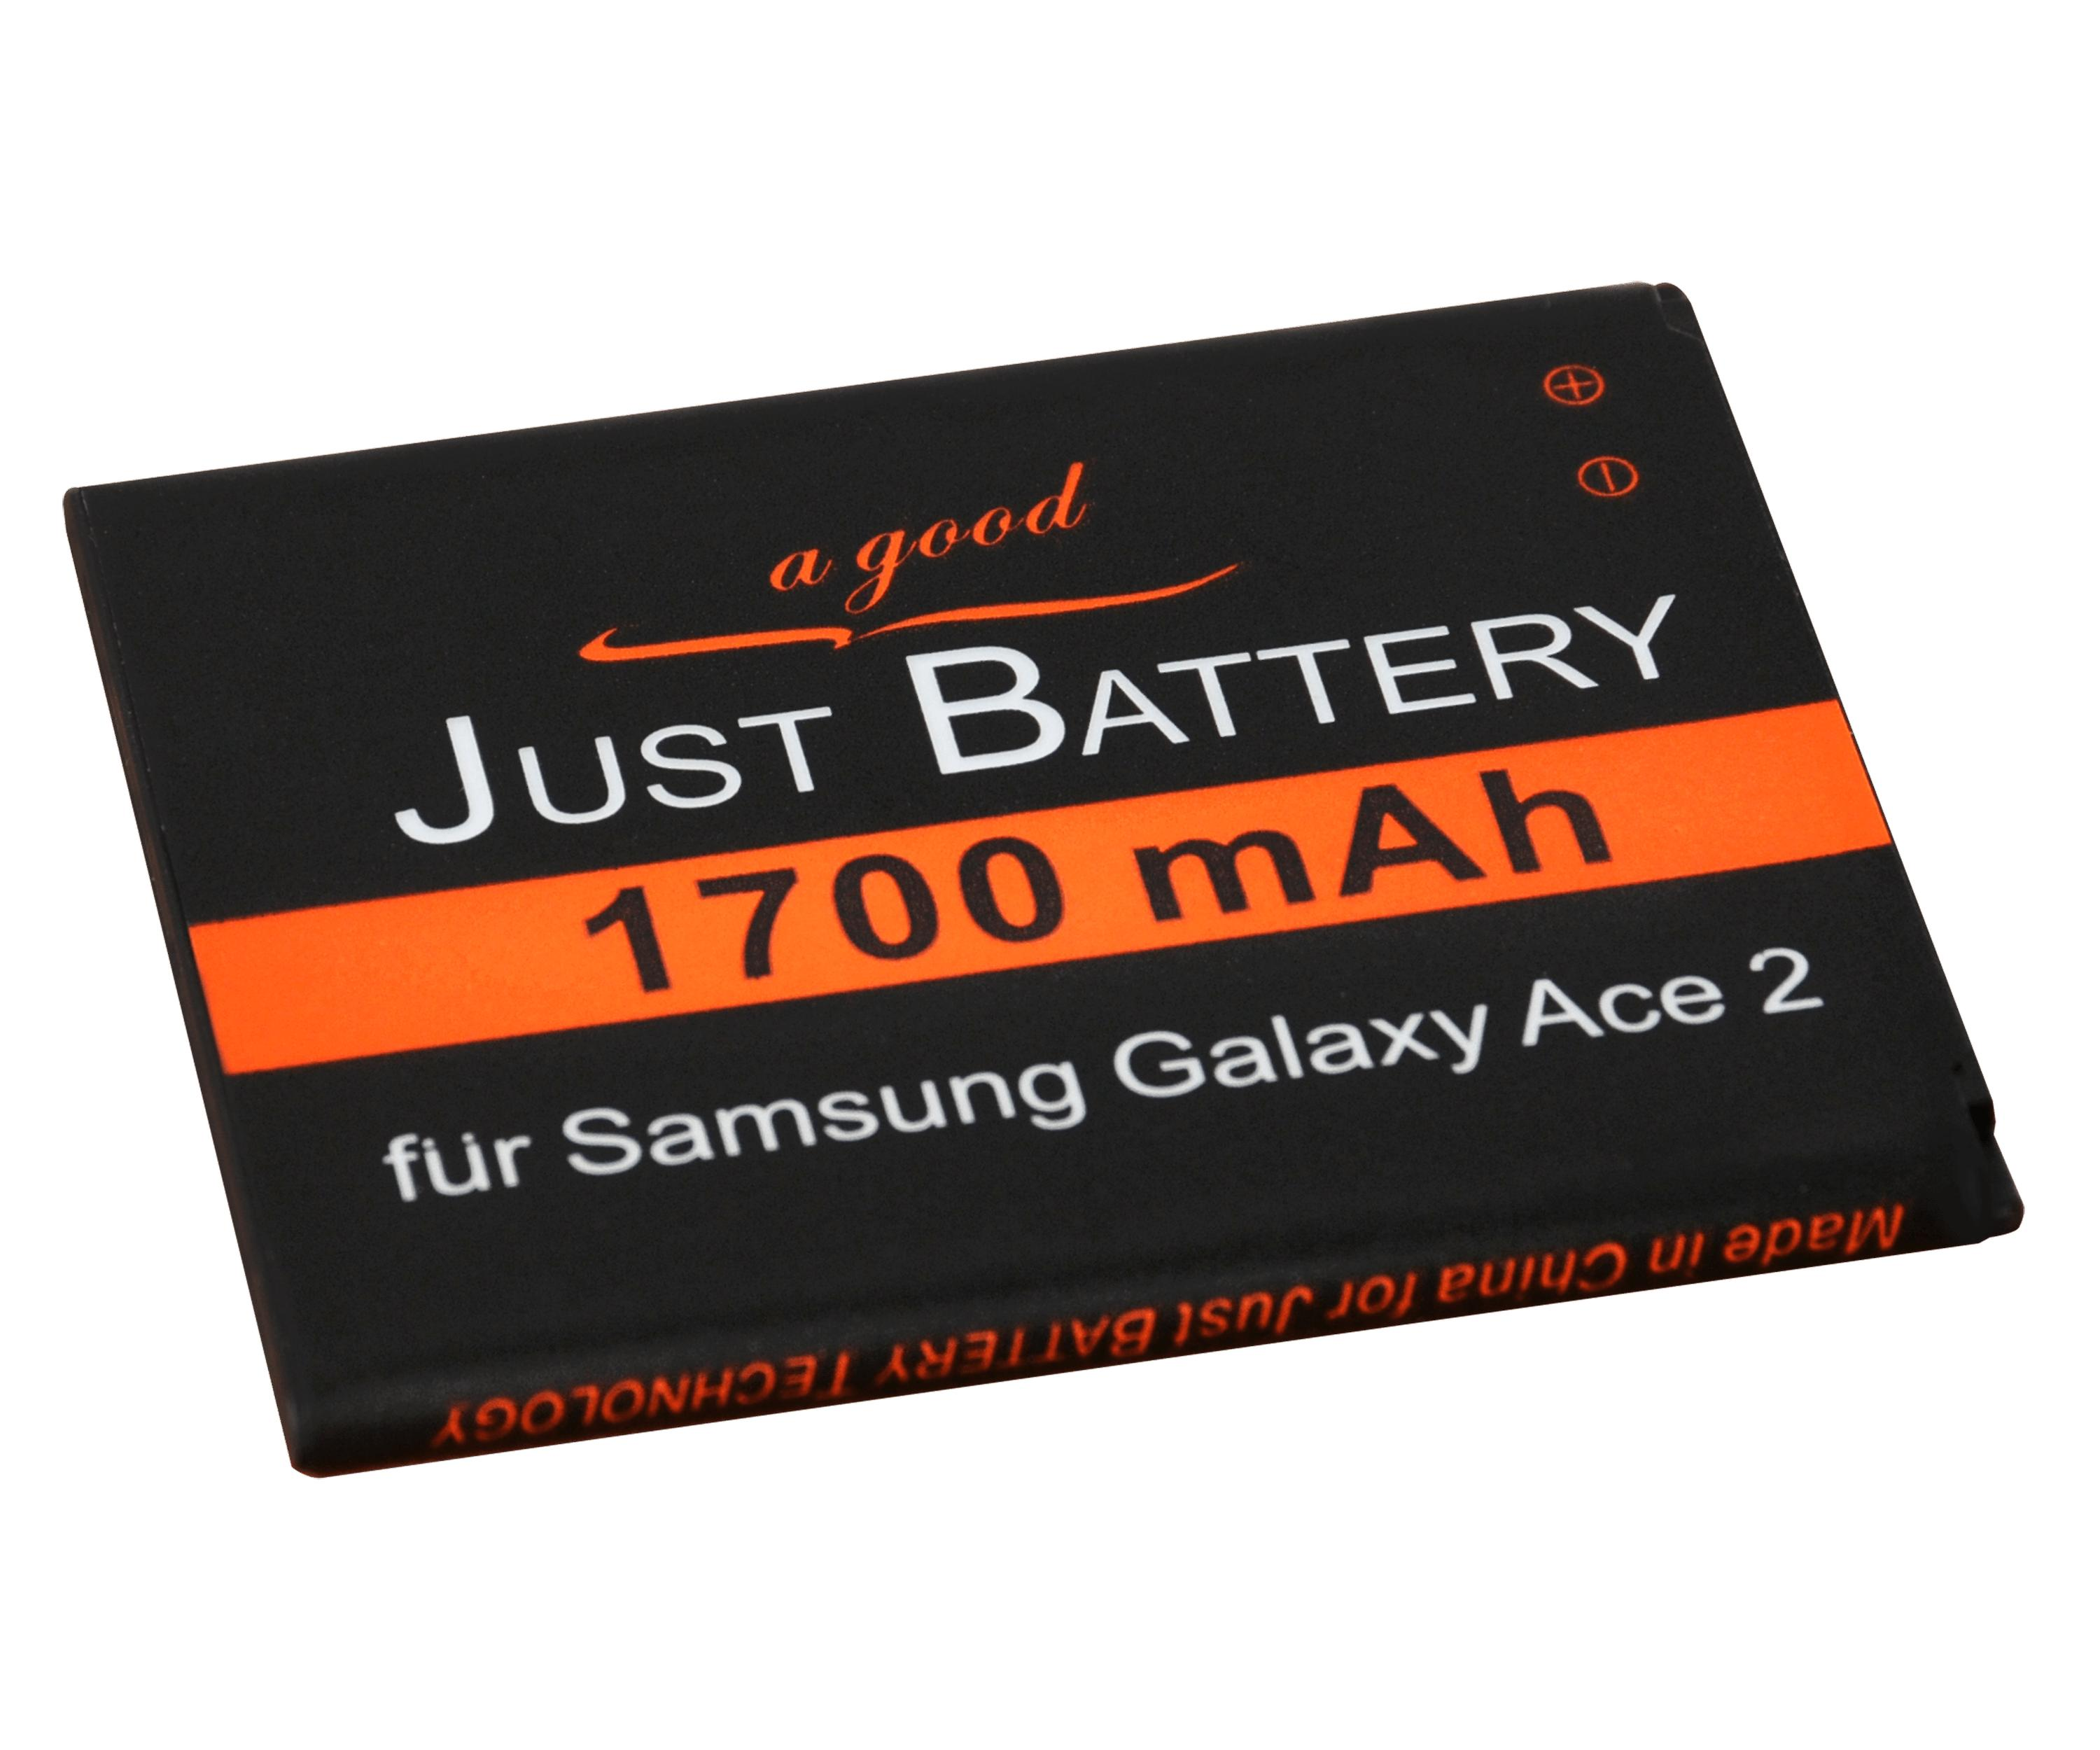 Battery for Samsung Galaxy S Duo 2 GT s7582